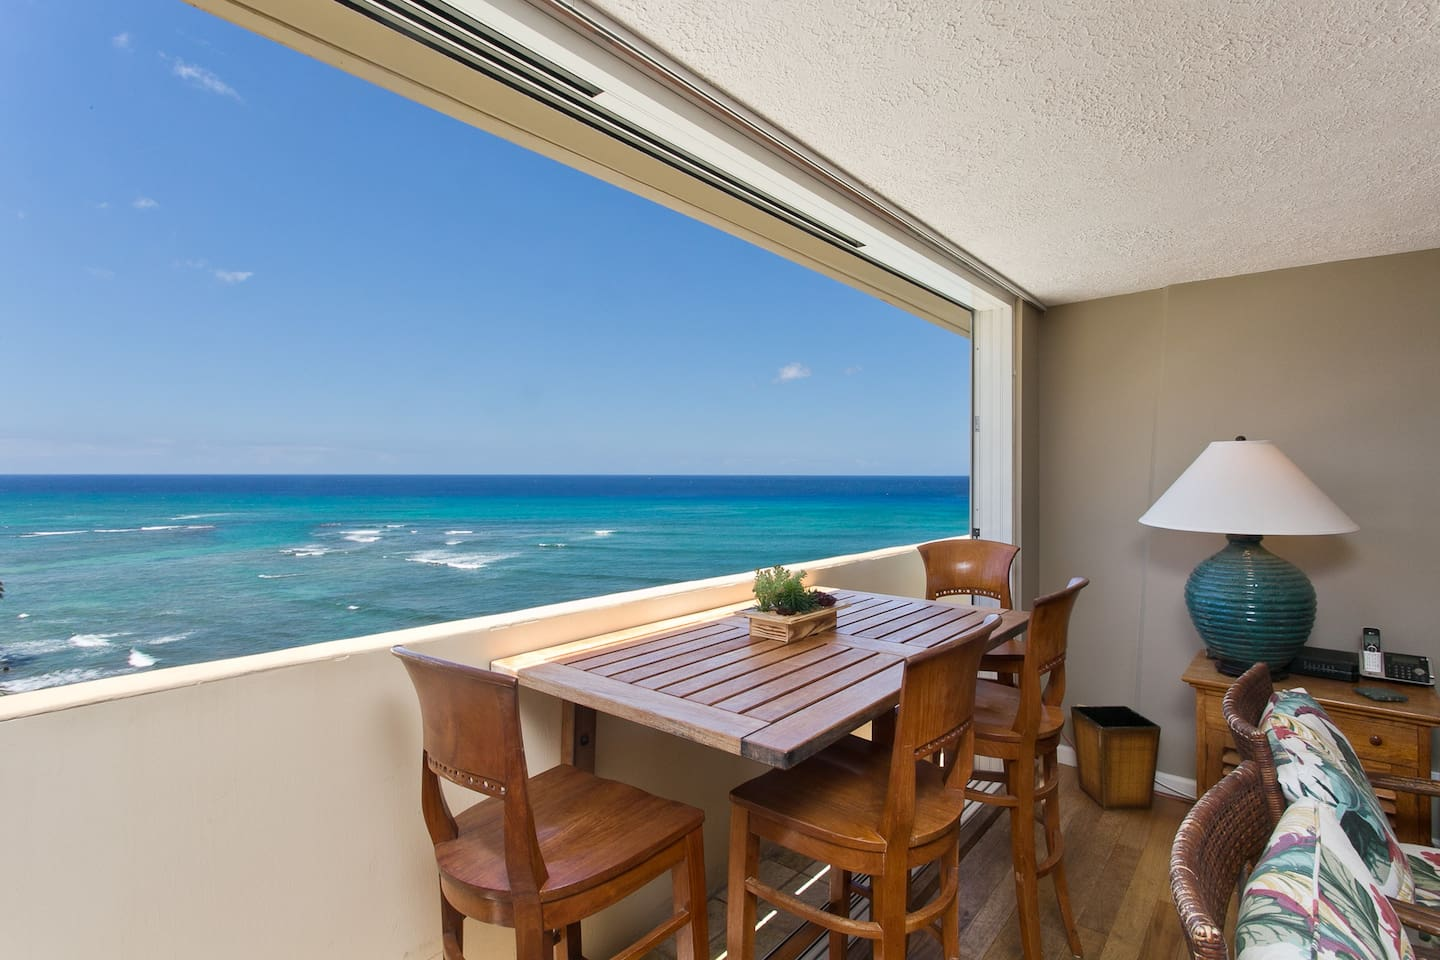 Relax in this one of a kind Pacific Ocean Penthouse - The perfect place to unwind